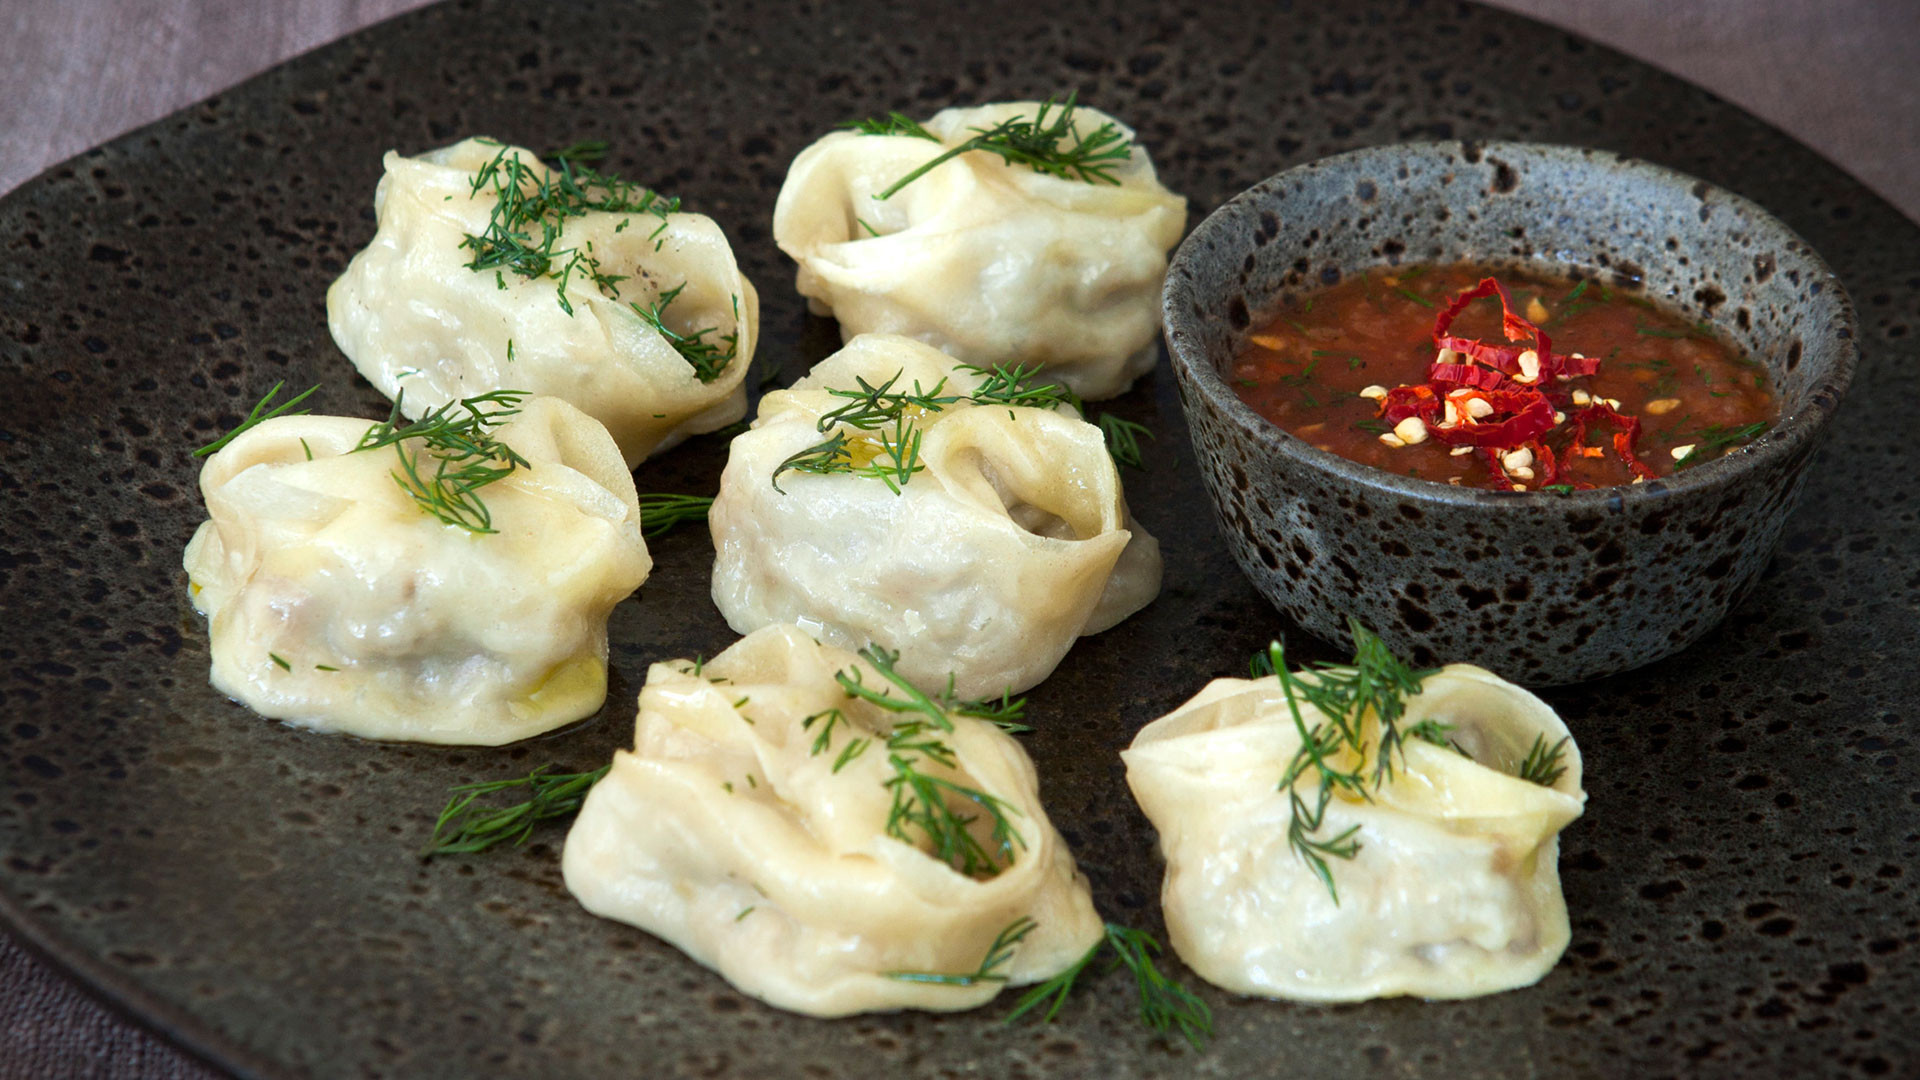 Manti dumplings at Samarkand